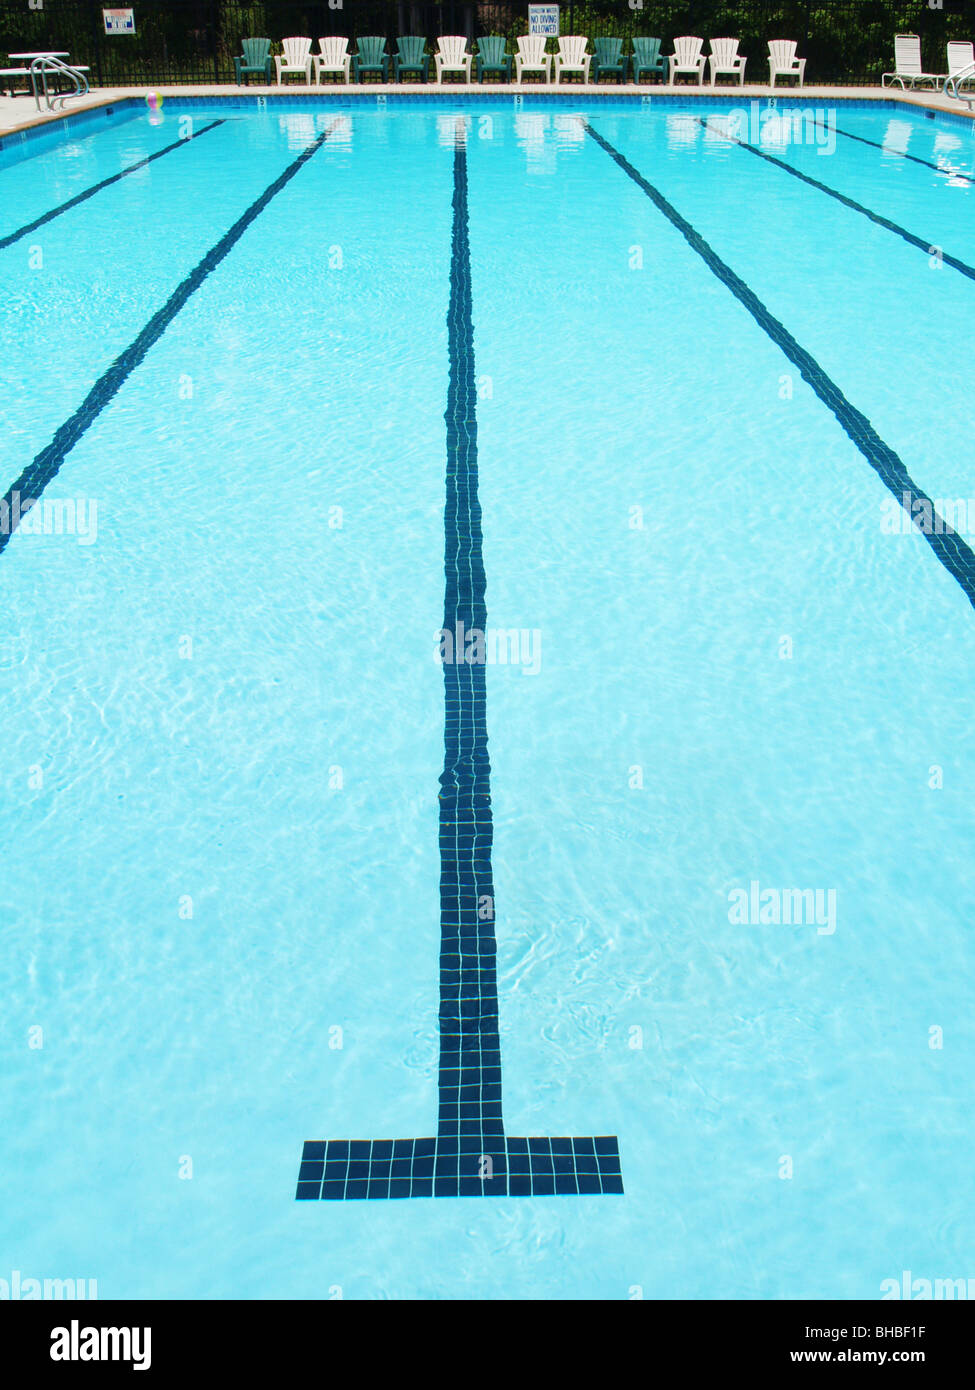 olympic swimming pool lanes.  Olympic Olympic Sized Swimming Pool Lane With Stripe On The Bottom For Swimming Pool Lanes